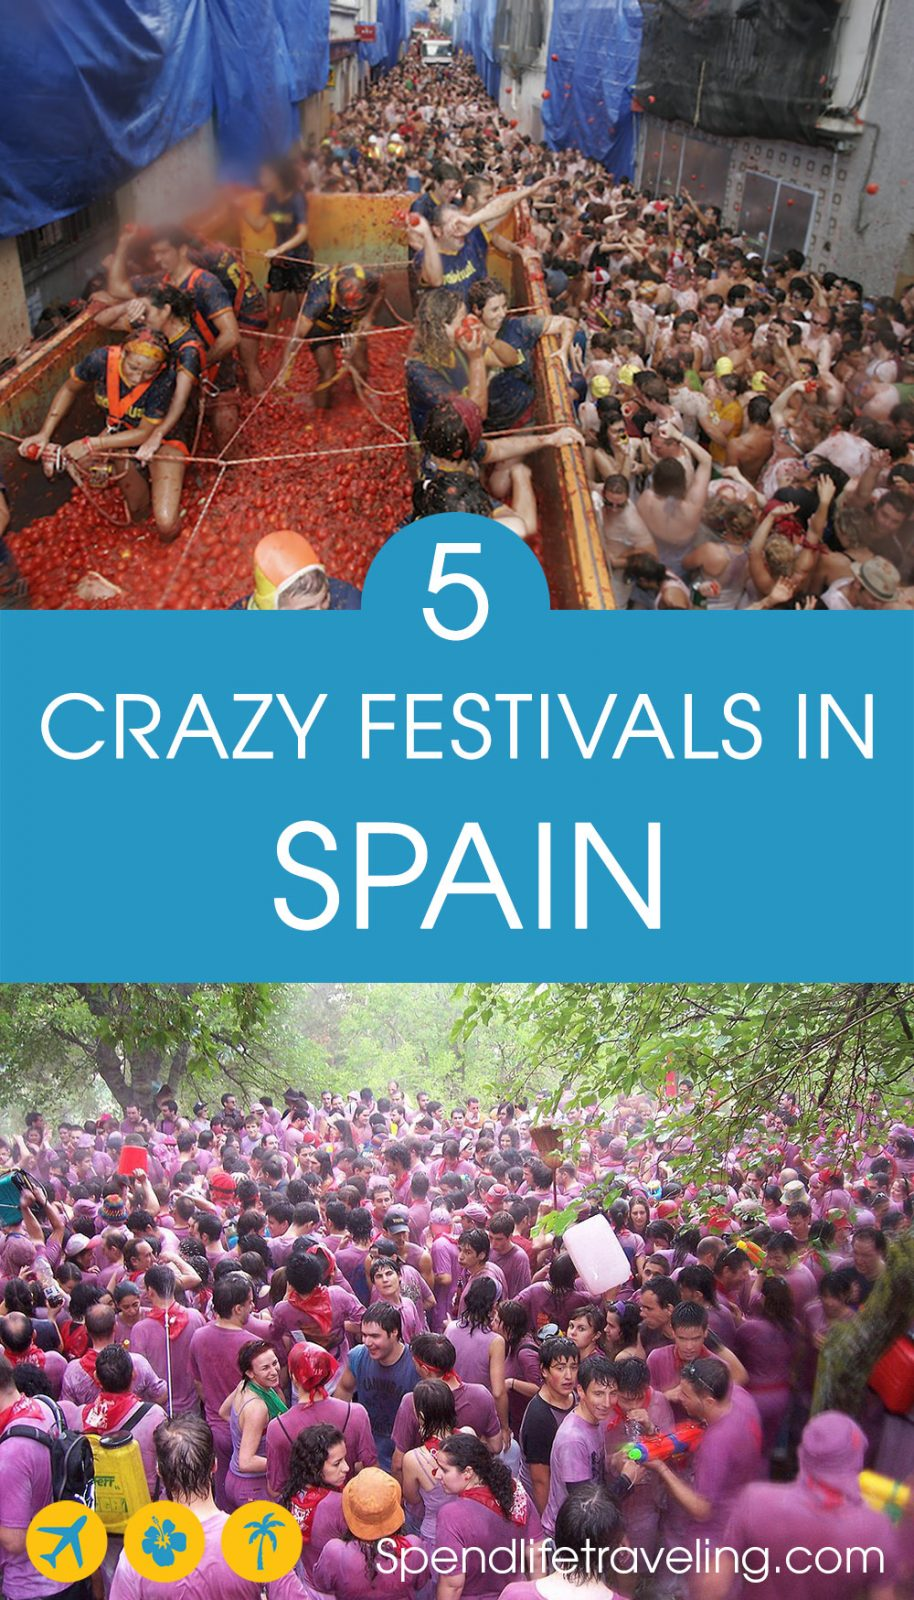 5 Crazy Spanish Festivals You Have to See to Believe! #festivalsSpain #Spainfiestas #visitSpain #travelSpain